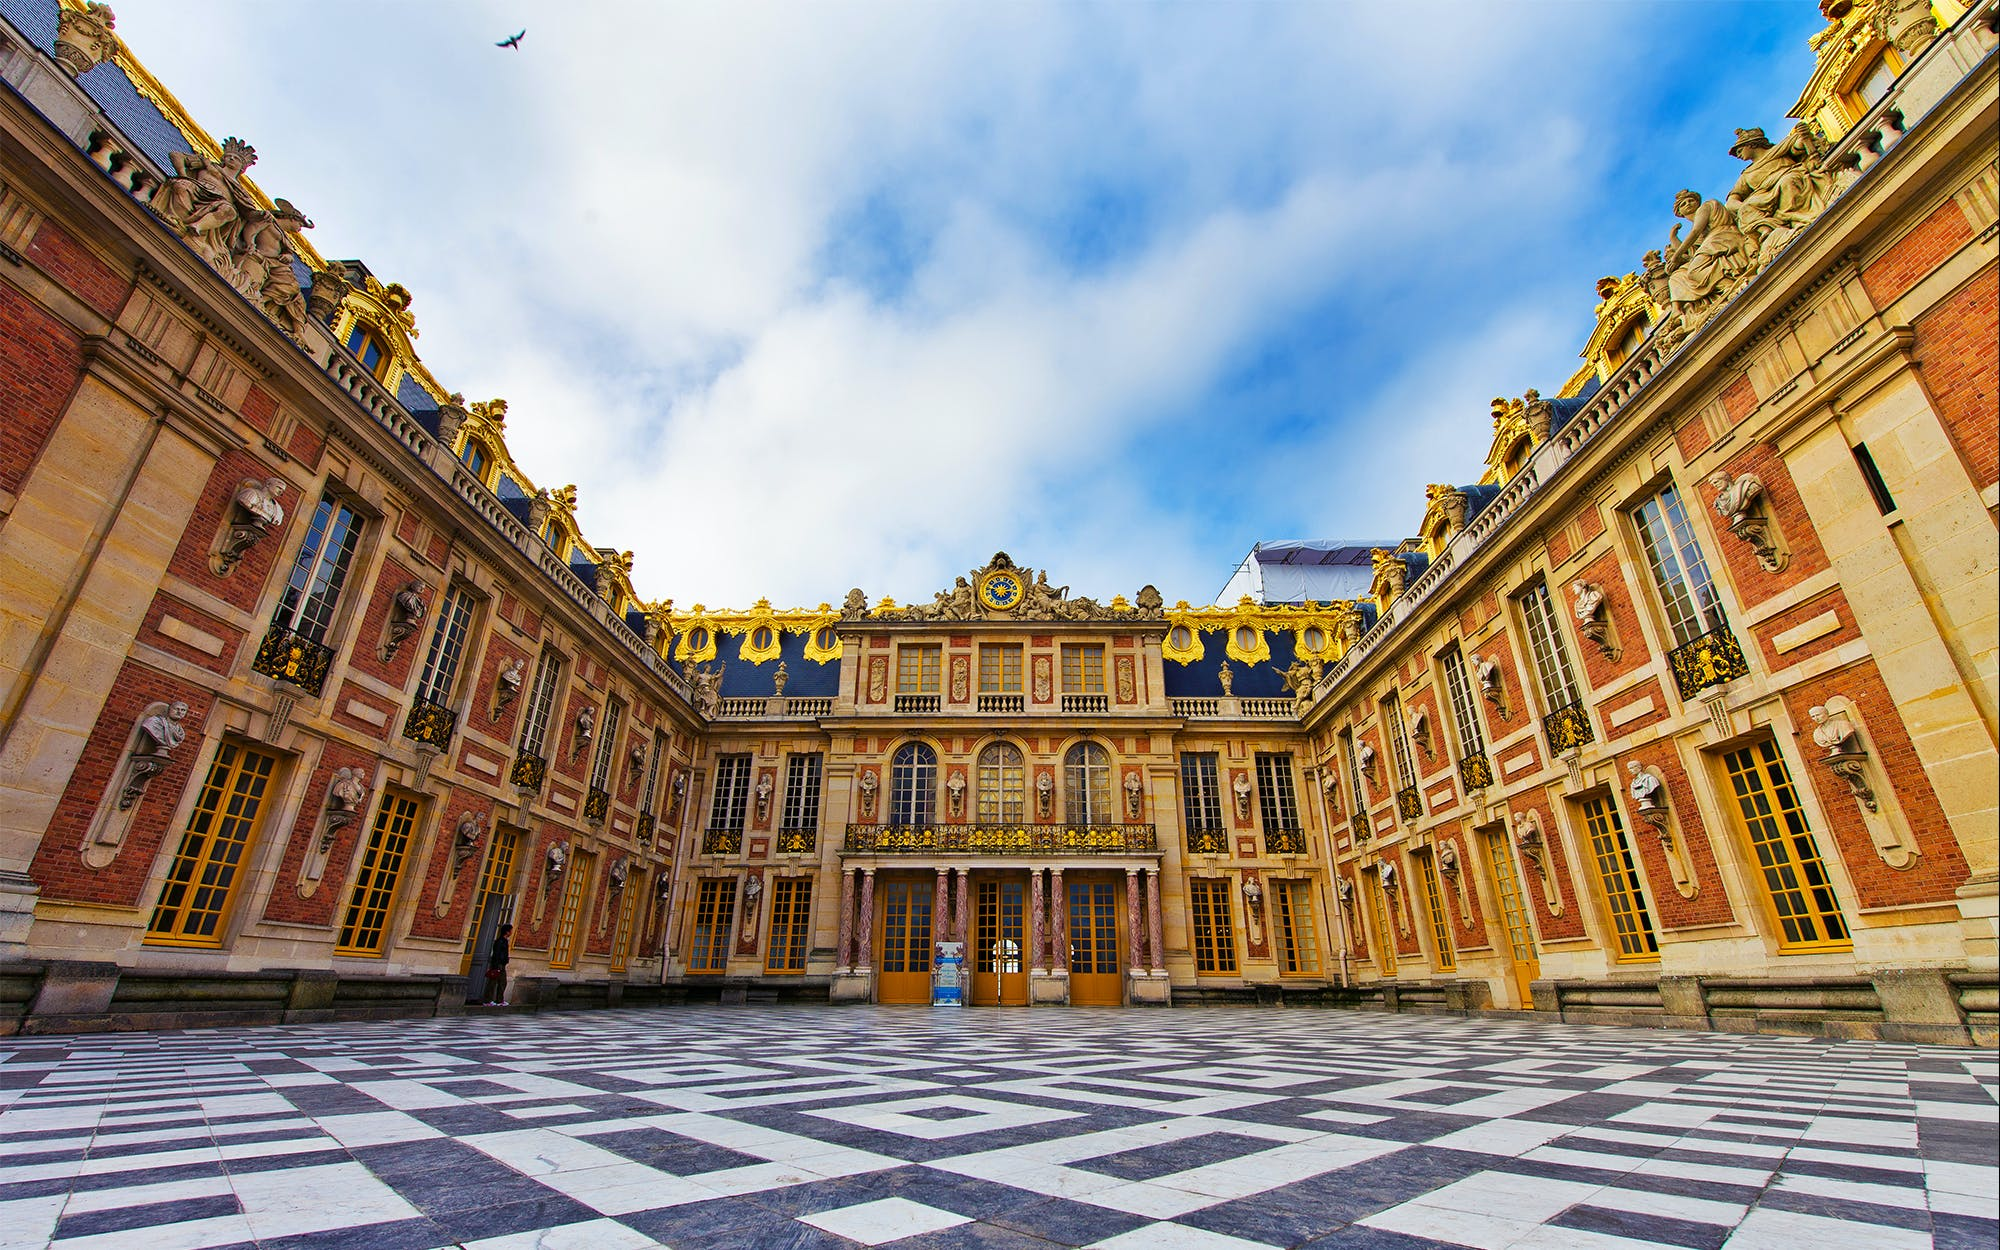 Skip the Line: Versailles Palace & Gardens Guided Tour from Paris